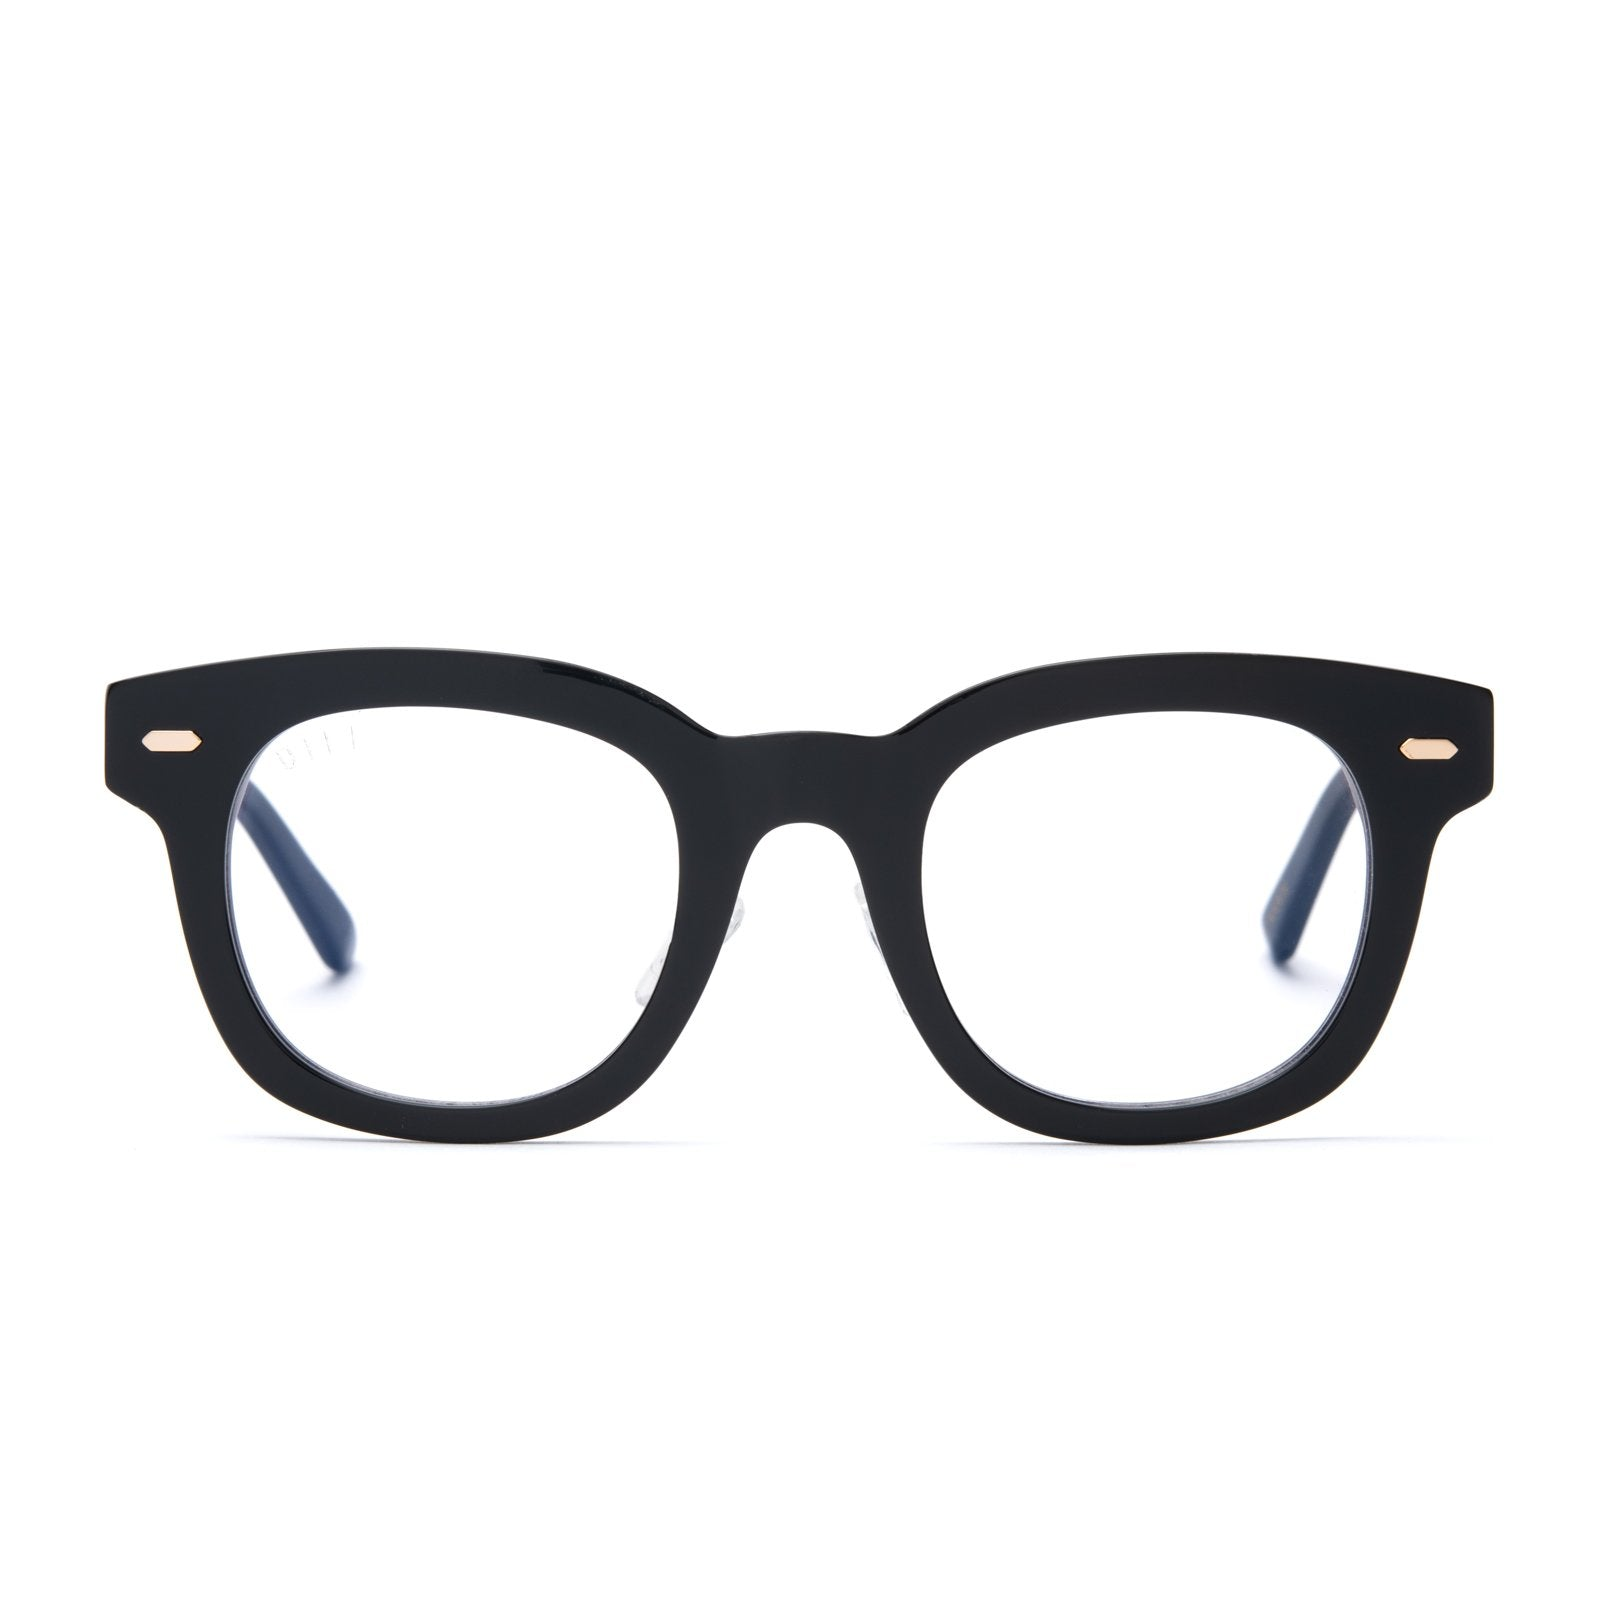 Summer eyeglasses with black frames and blue light technology lens front view